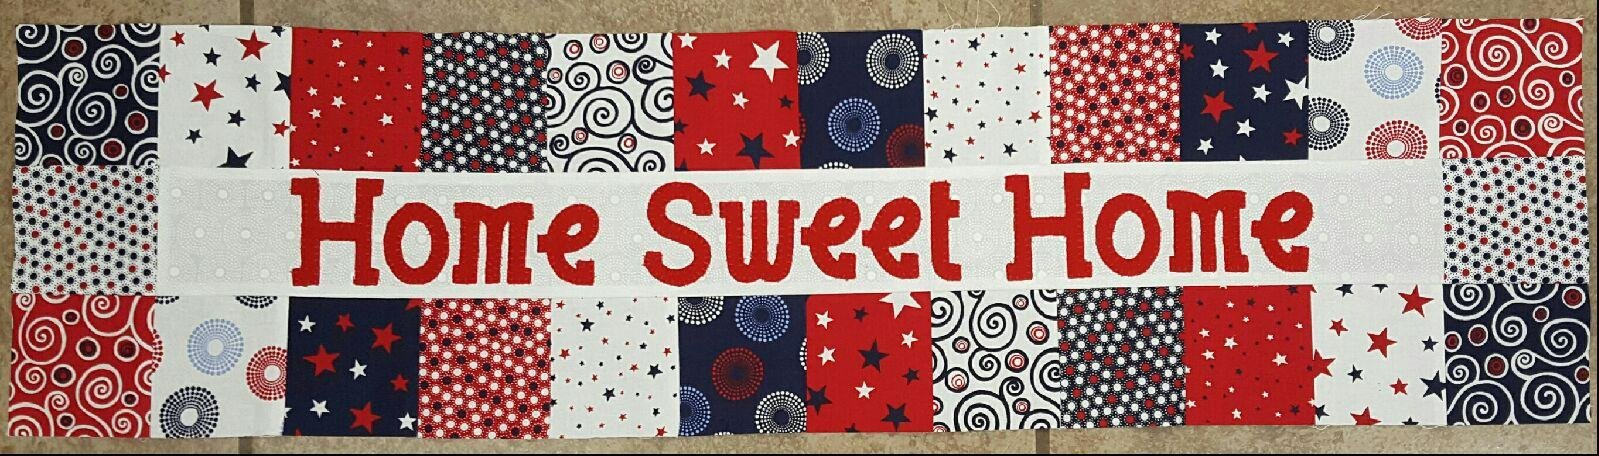 Row By Row Patterns - Home Sweet Home - Squares Red/White/Blue